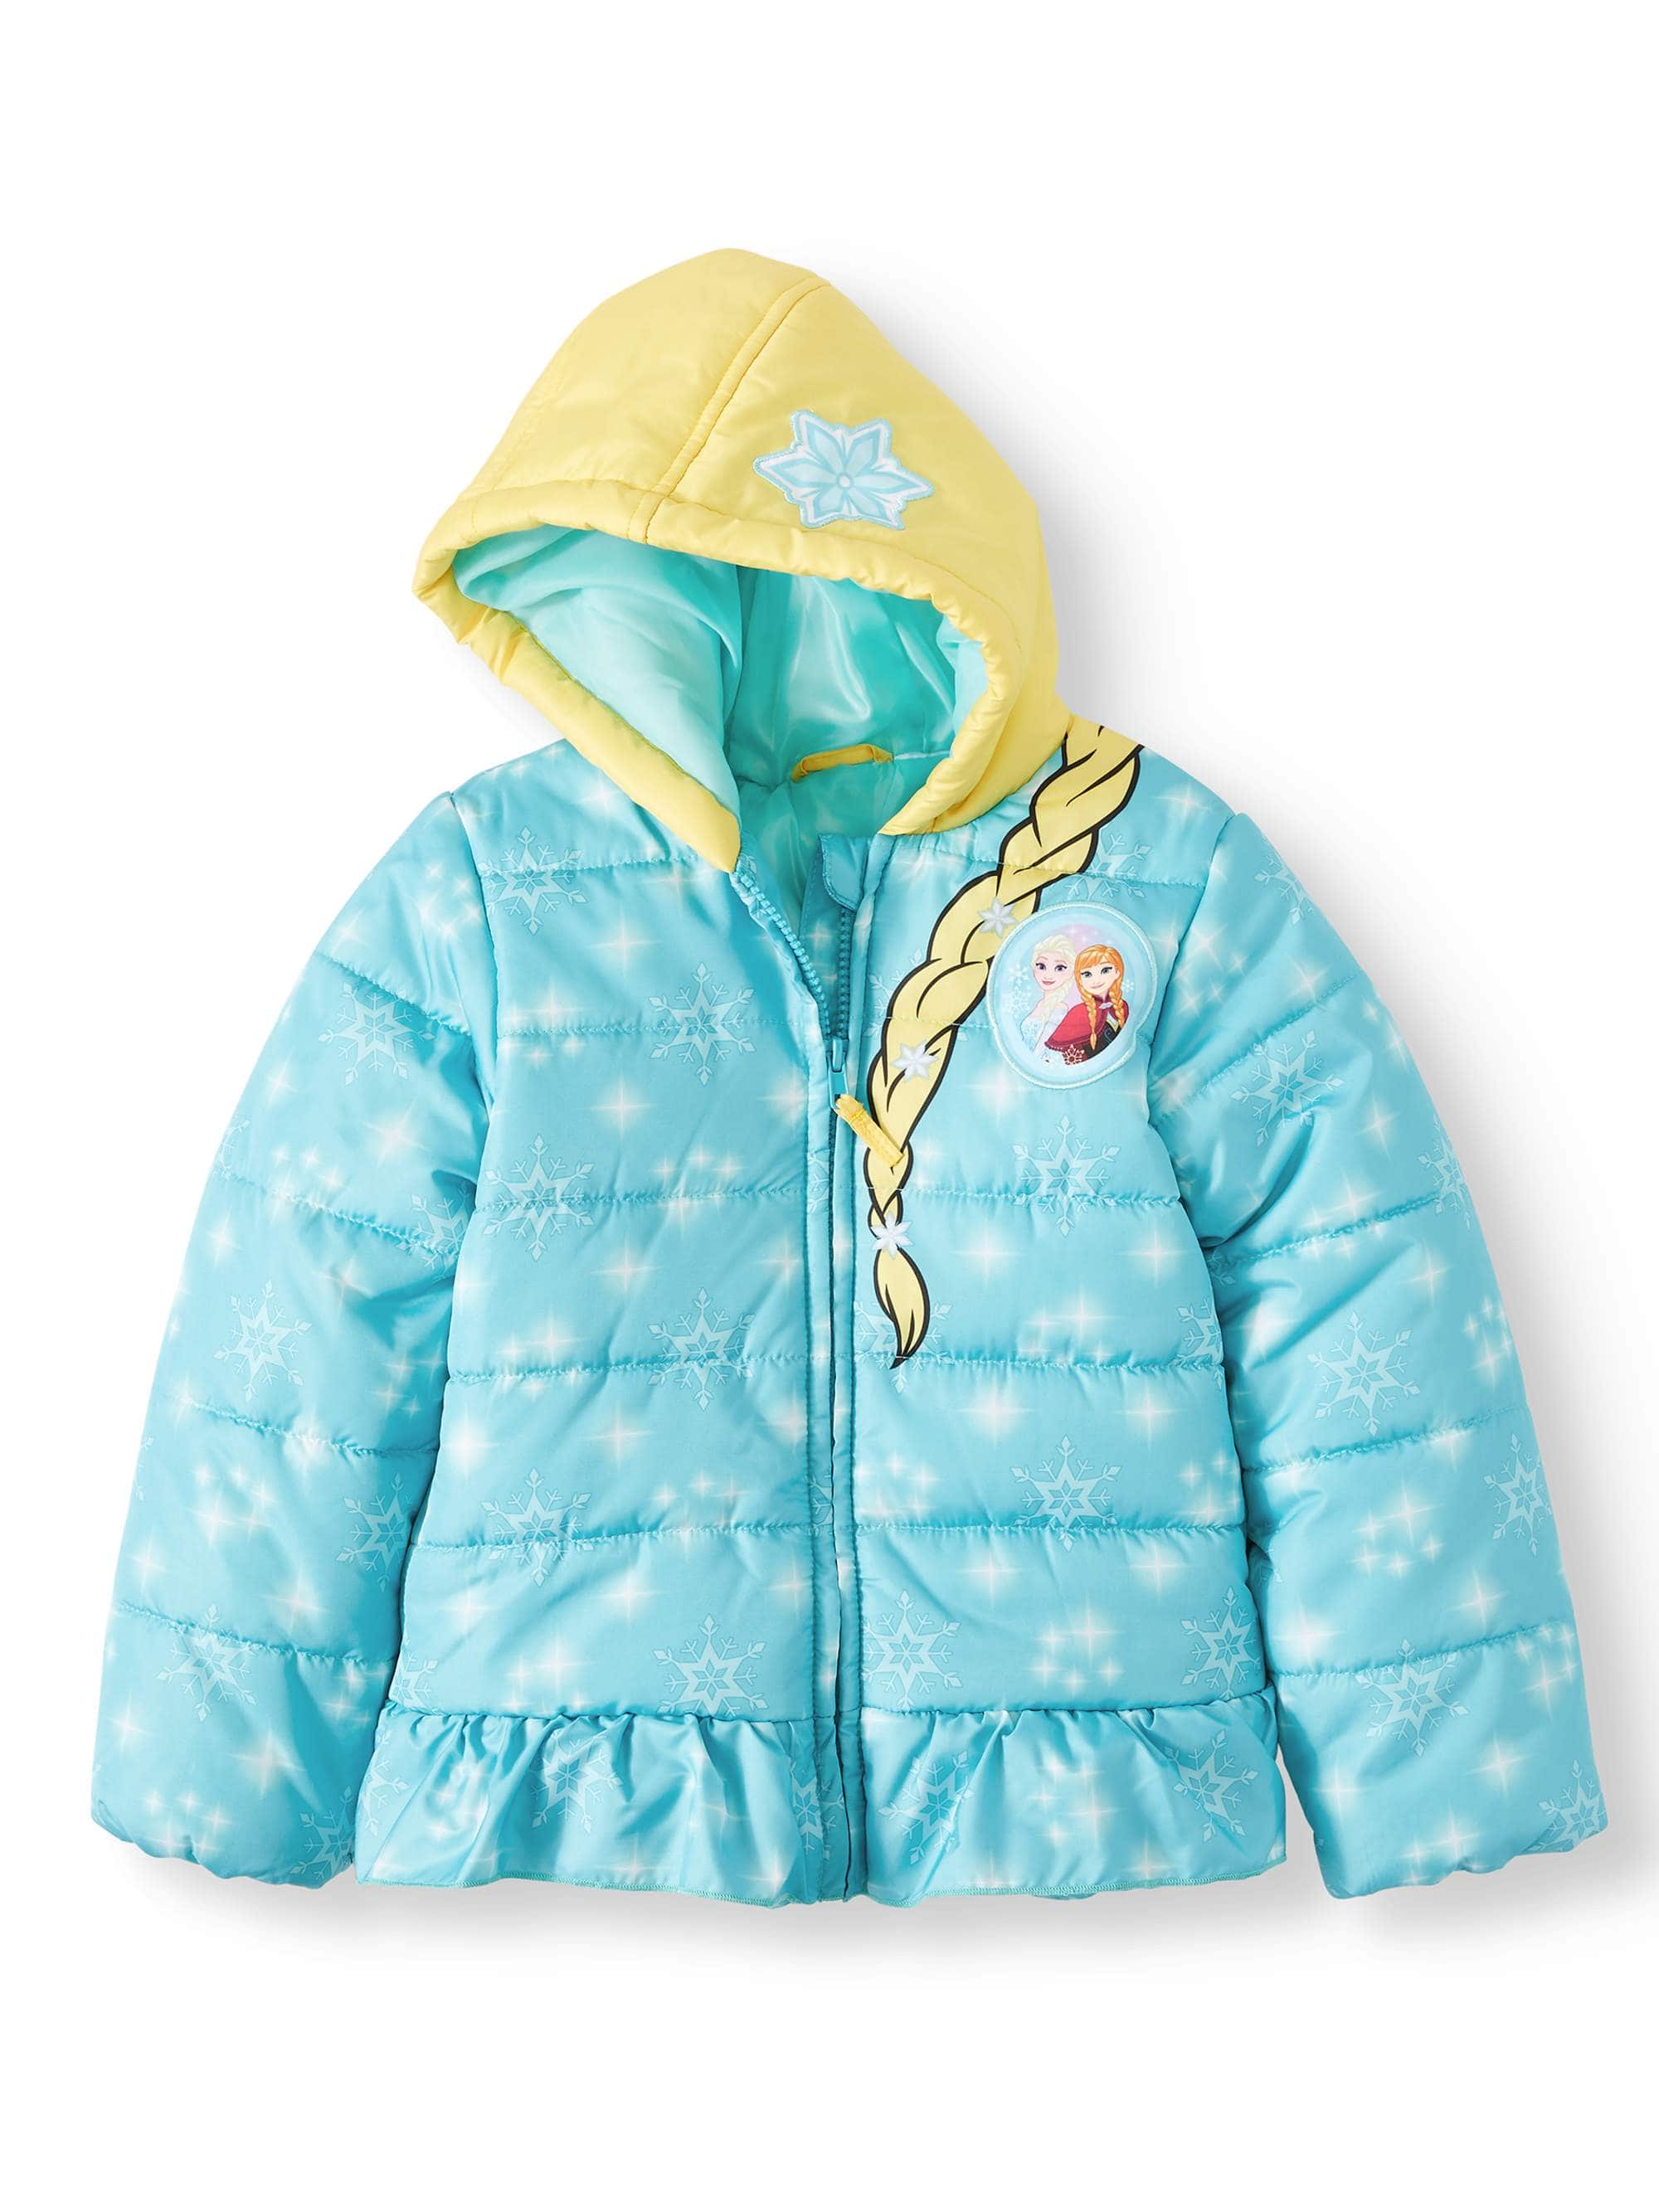 Disney's Frozen Toddler Girl Costume Winter Coat (2T-5T) $16.50 + Free Store Pickup at Walmart